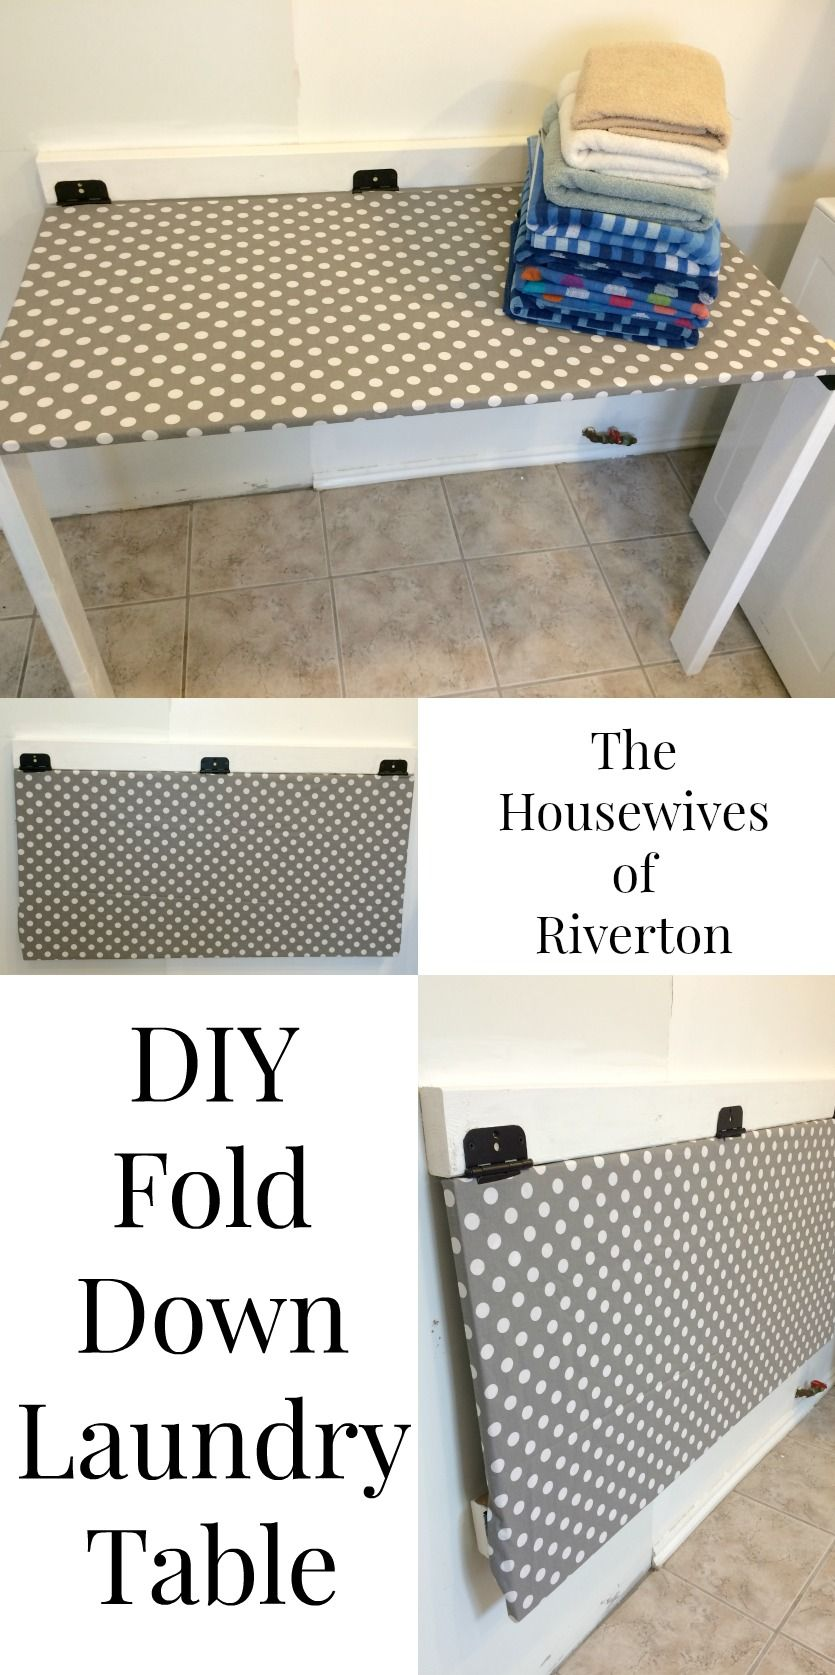 Laundry Table Ideas embrace open shelving open inclining makes any brisk attain simpler youll additionally seemingly discover youll hold stuff neater too since issues are Diy Fold Down Laundry Table Sienteglade Ad Glade Wwwhousewivesofriverton